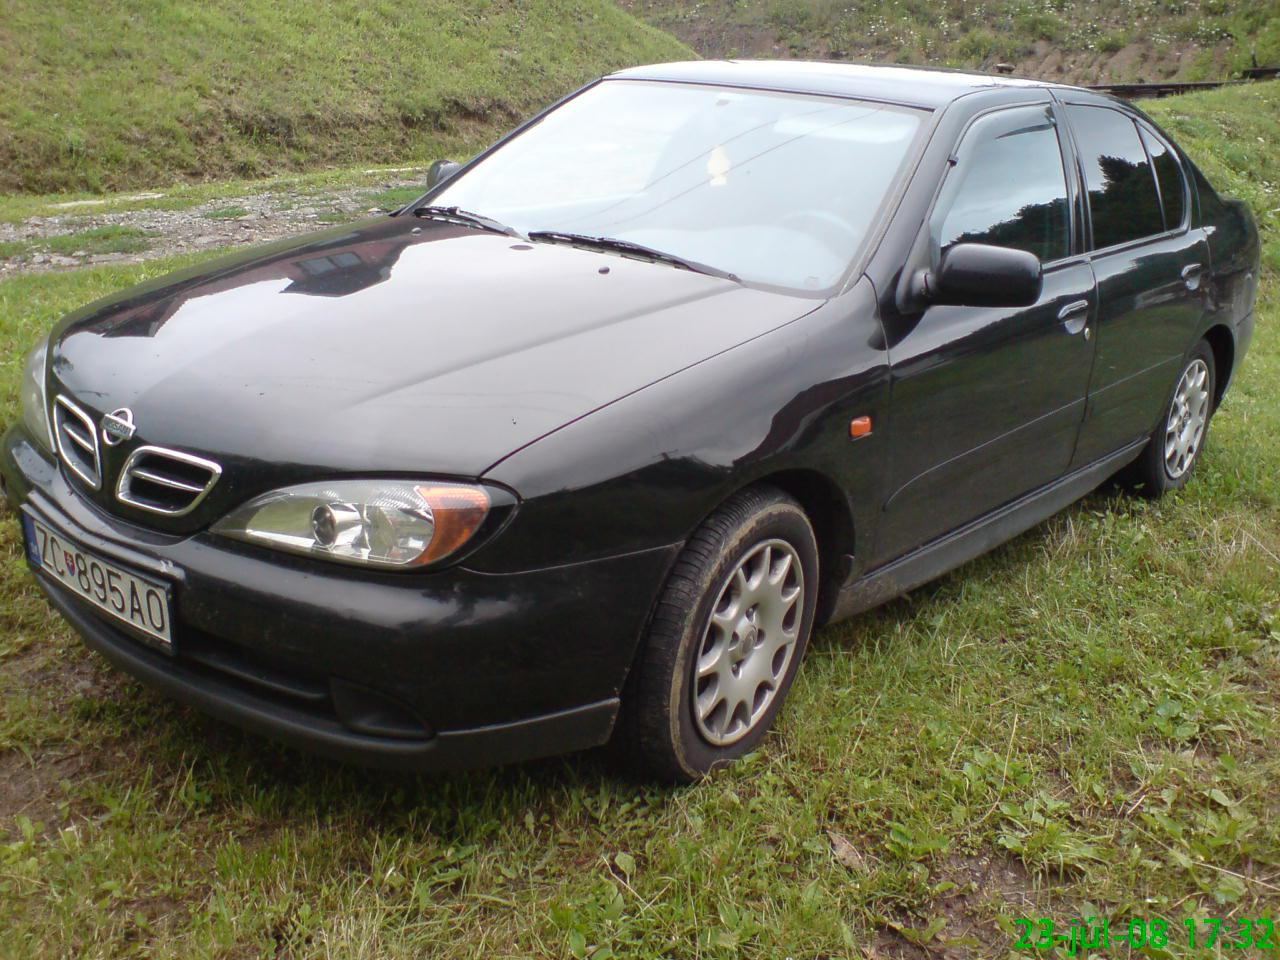 2000 nissan primera p11 generation 2 p11 2 0 120 cui diesel 66 kw. Black Bedroom Furniture Sets. Home Design Ideas